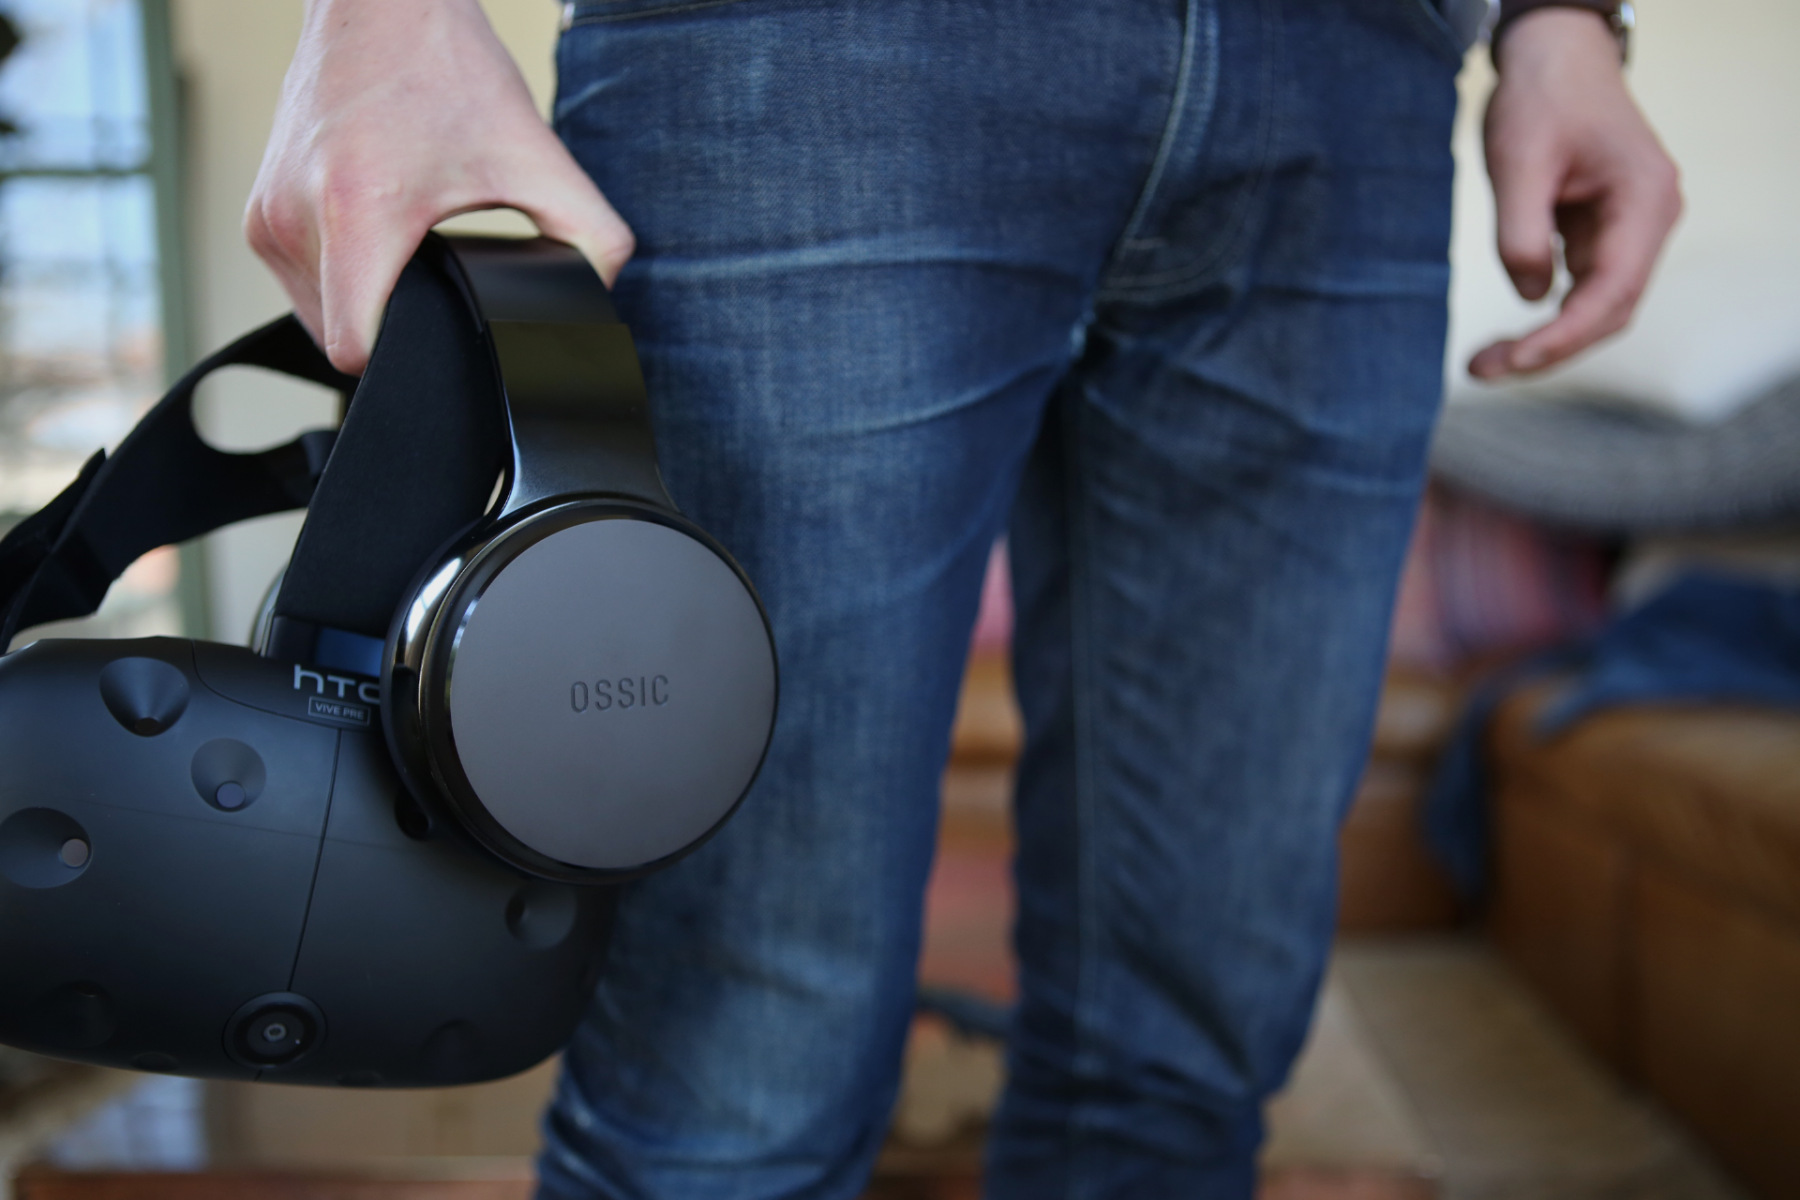 OSSIC headphones and HTC Vive